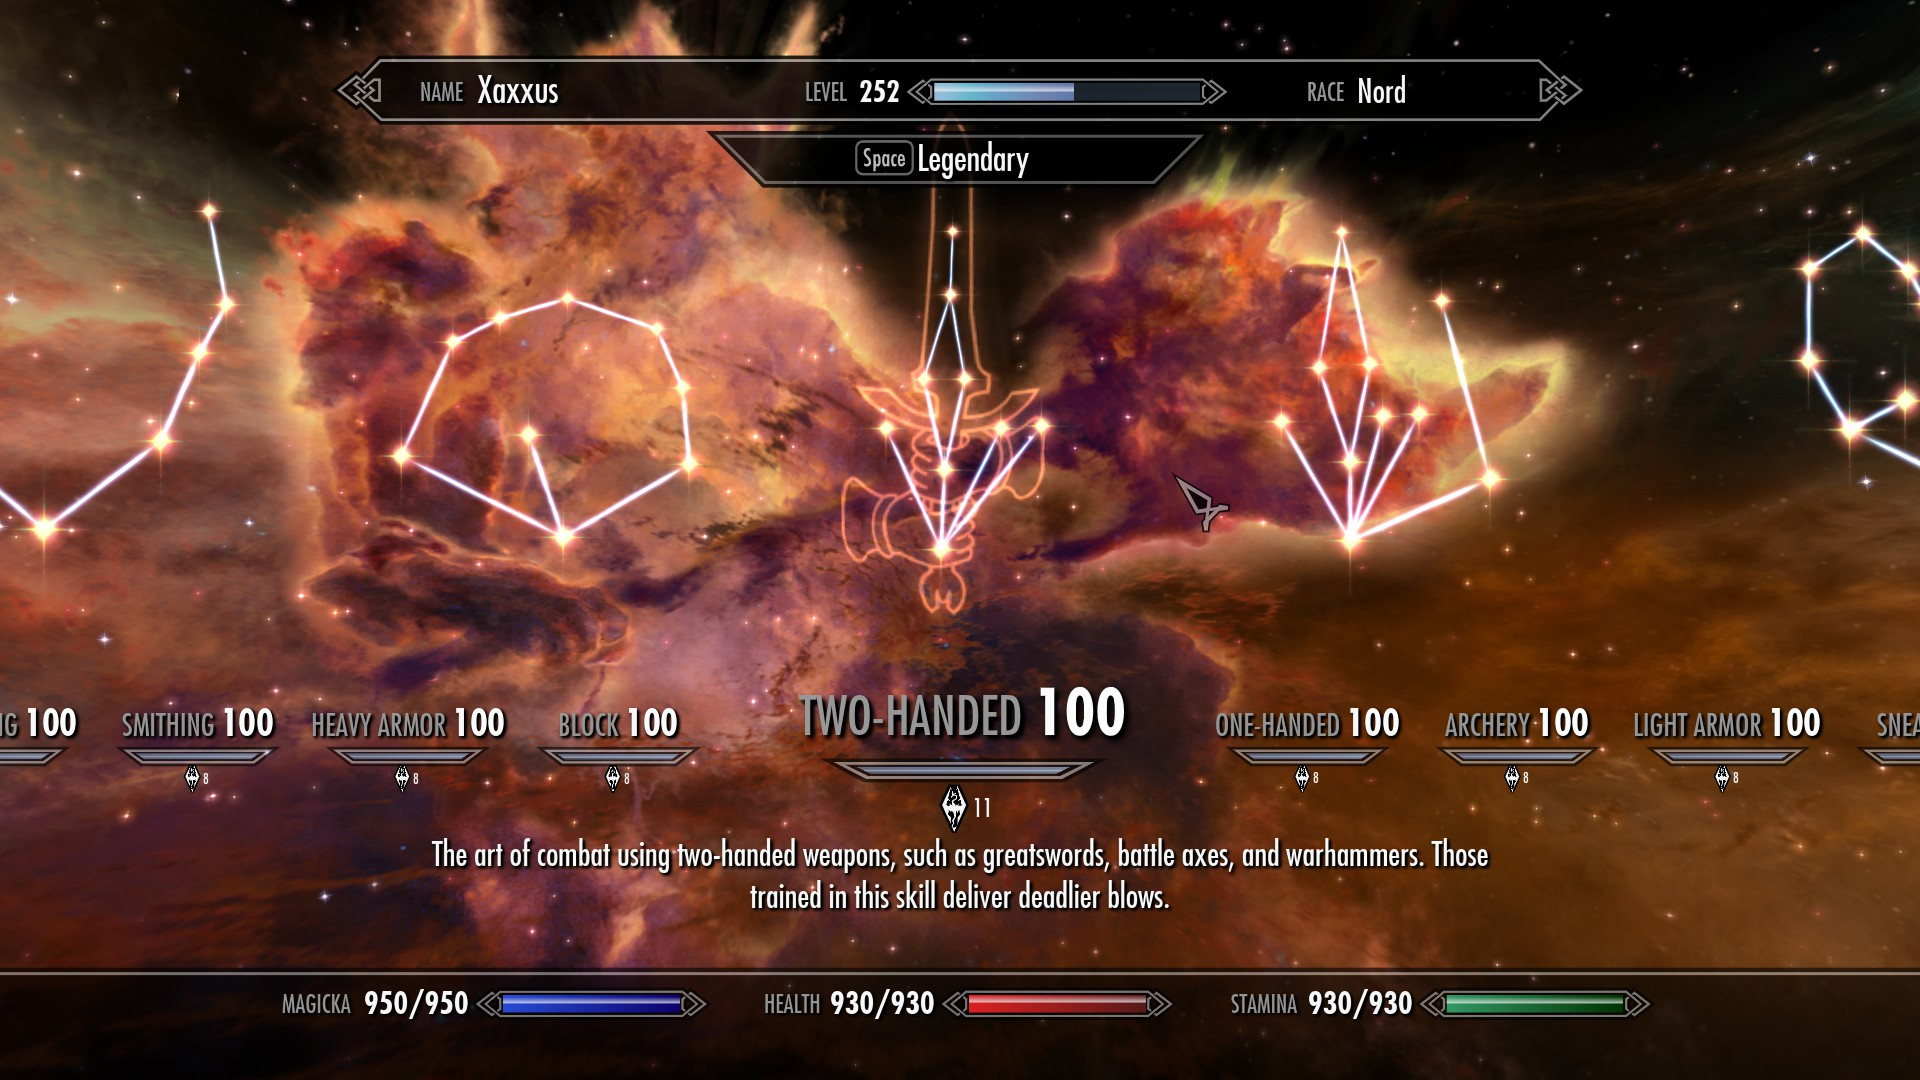 Skyrim perks: The best perks that every Dragonborn needs to